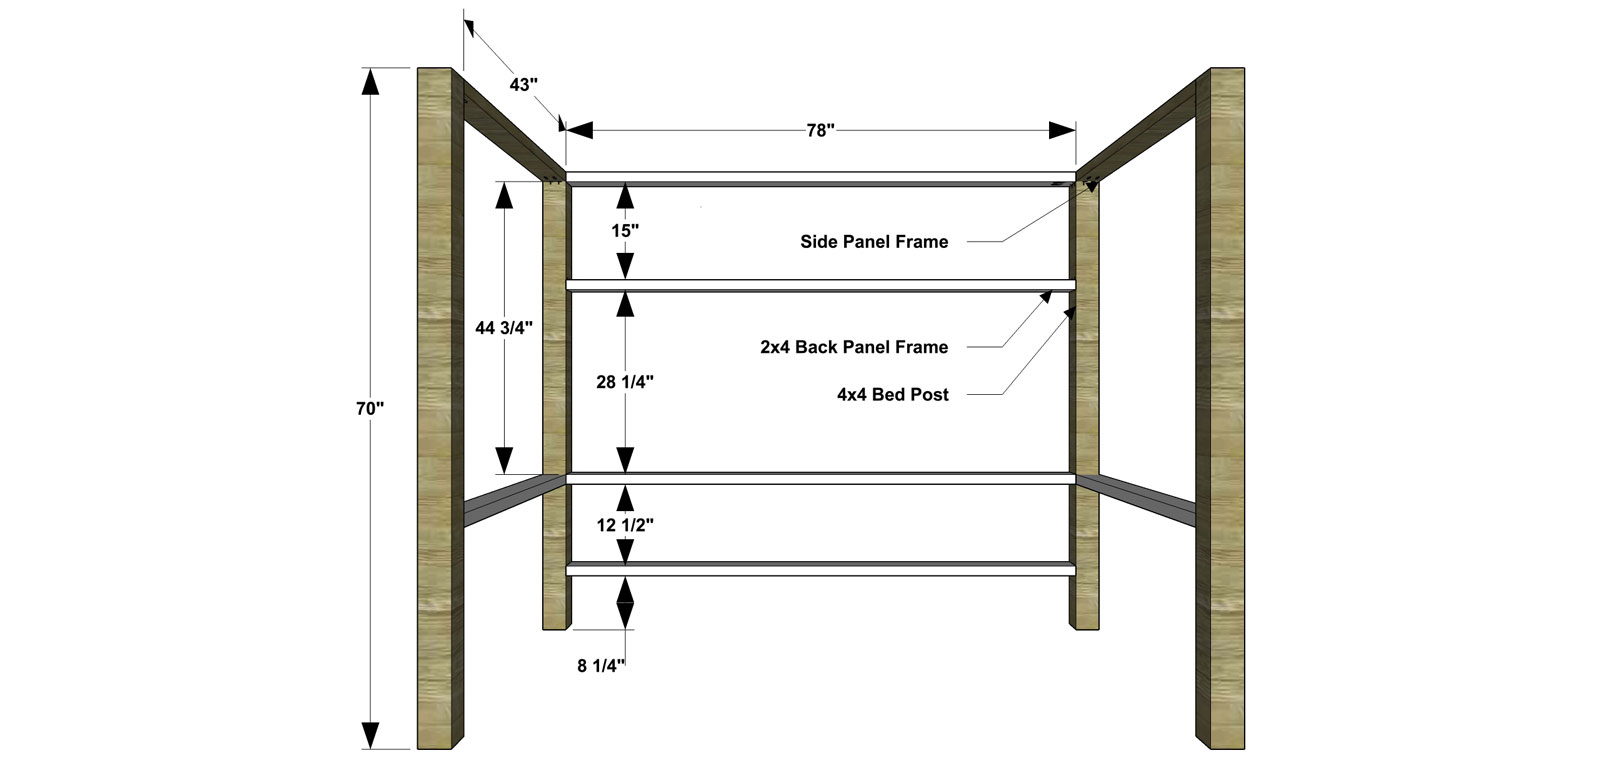 Posts and Frame for The Design Confidential Free DIY Furniture Plans // How to Build a Duet Bunk Bed